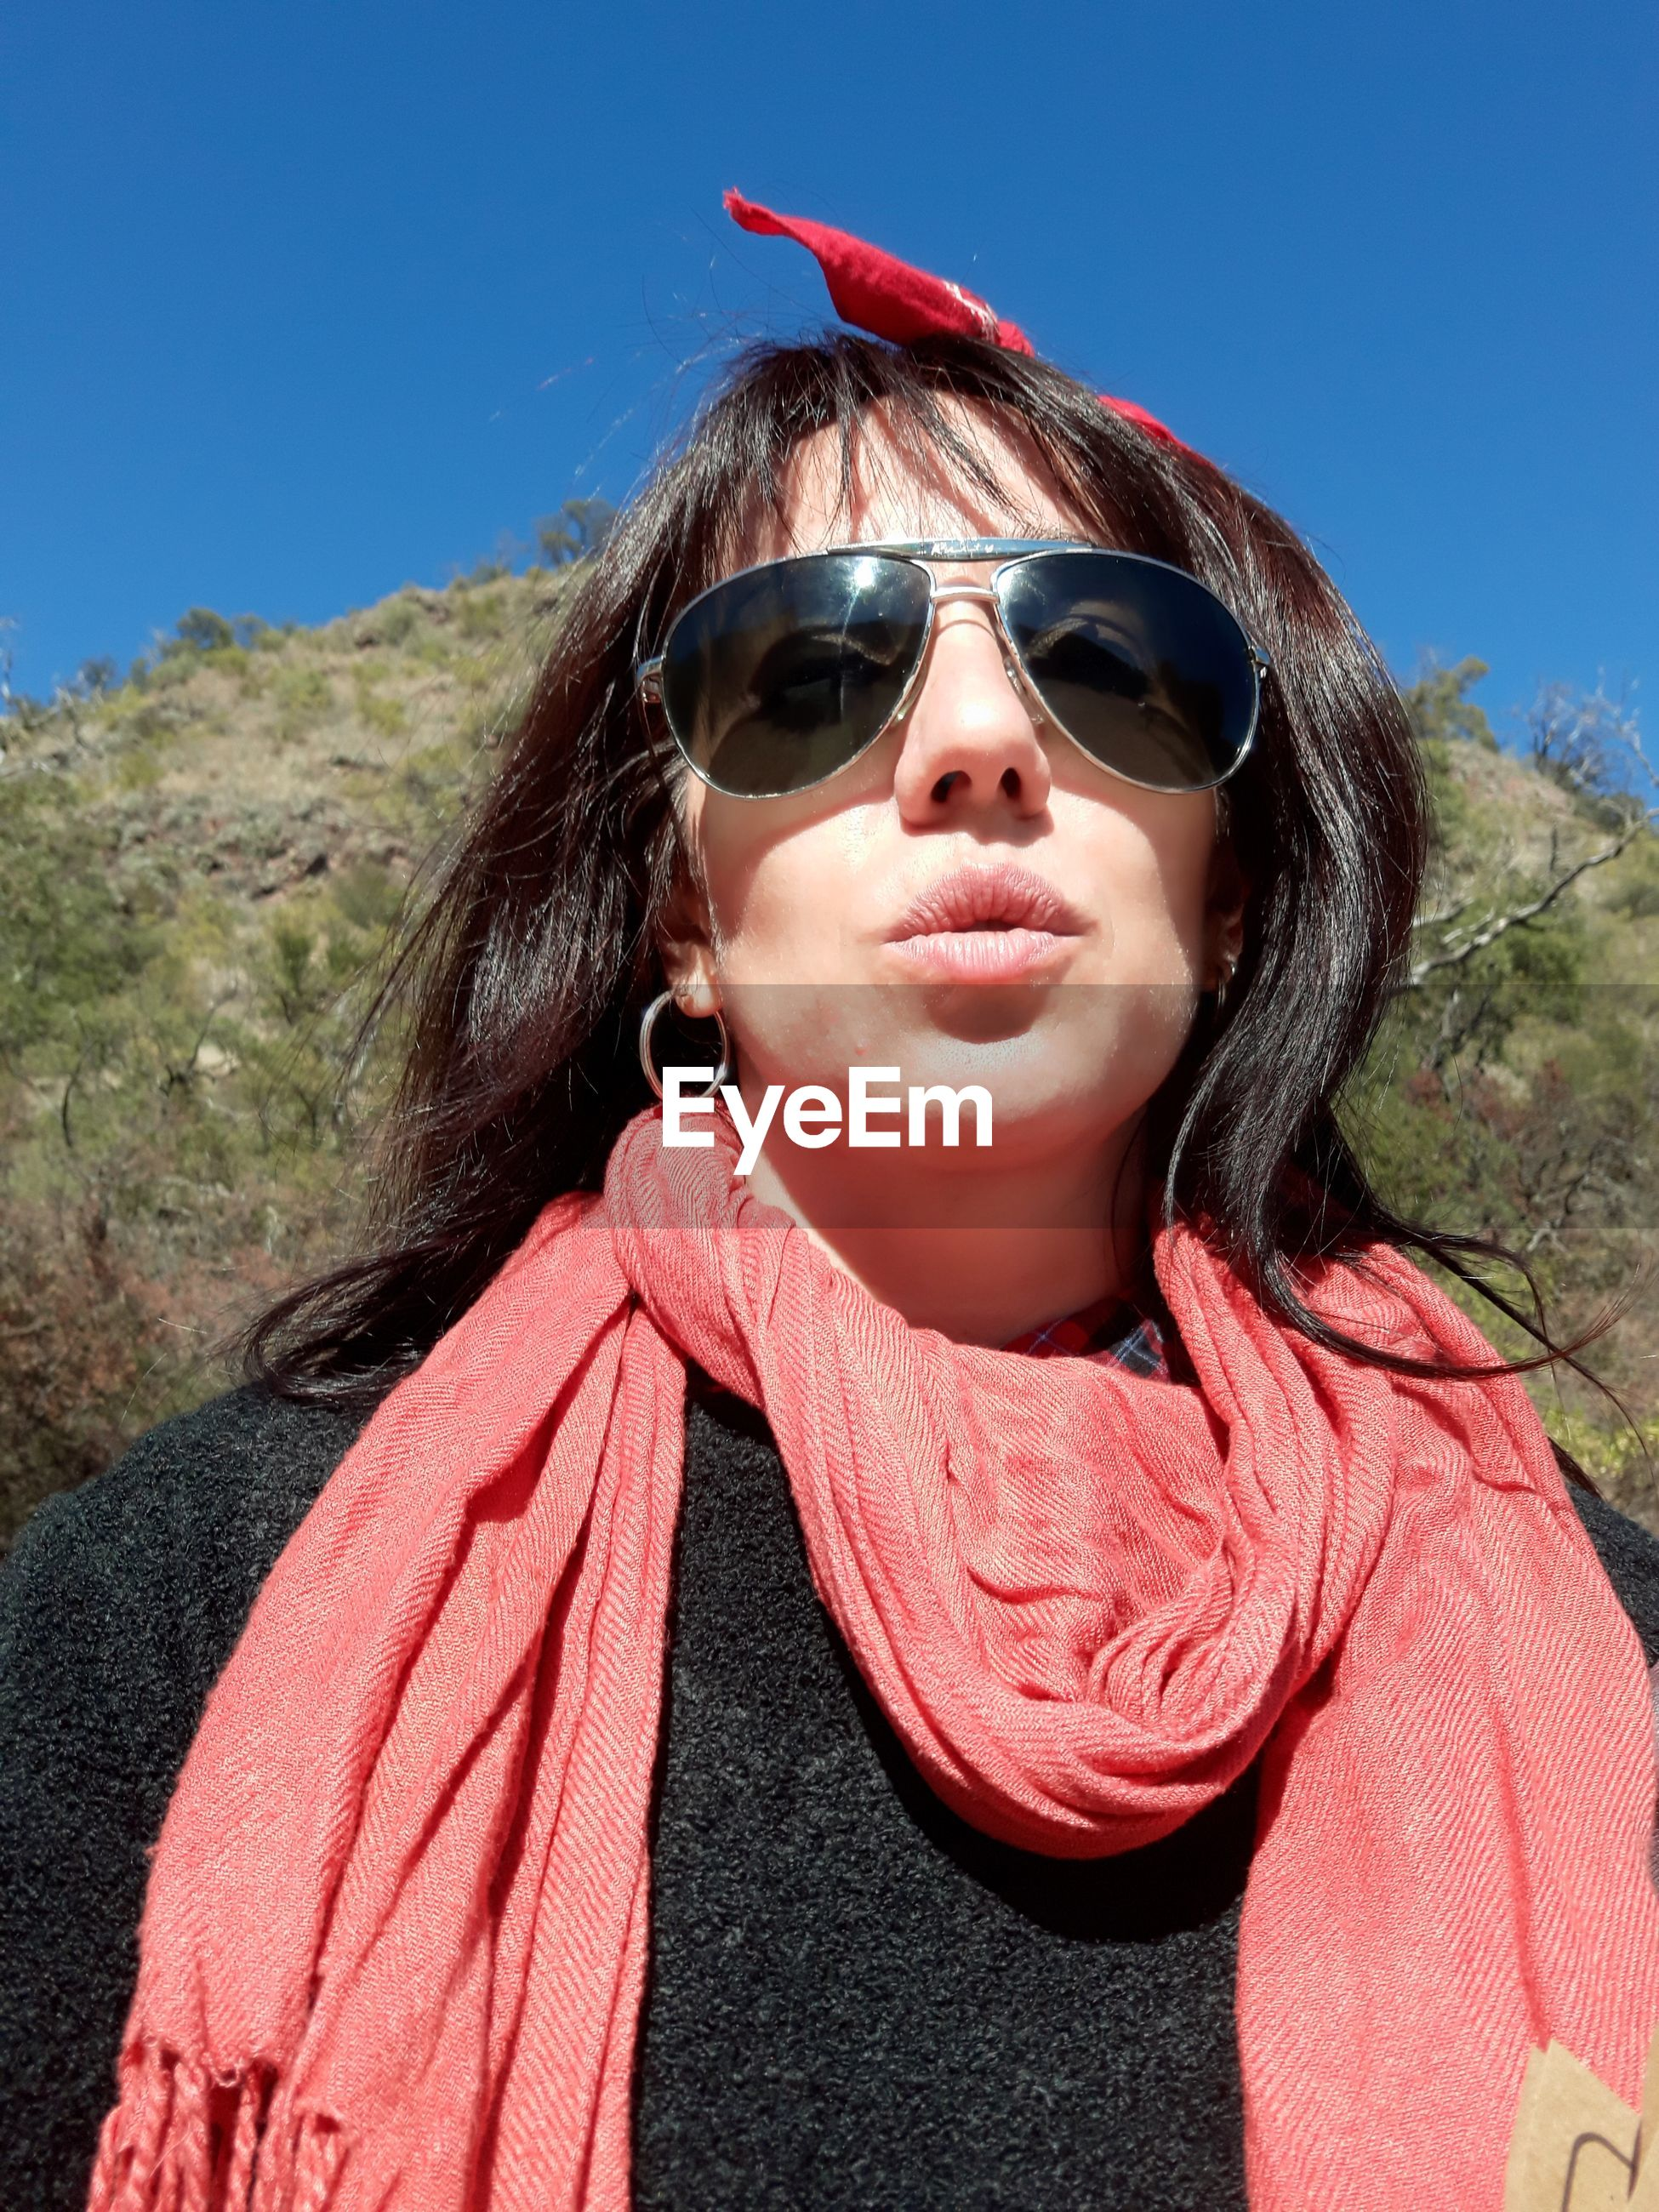 Portrait of woman wearing sunglasses during sunny day